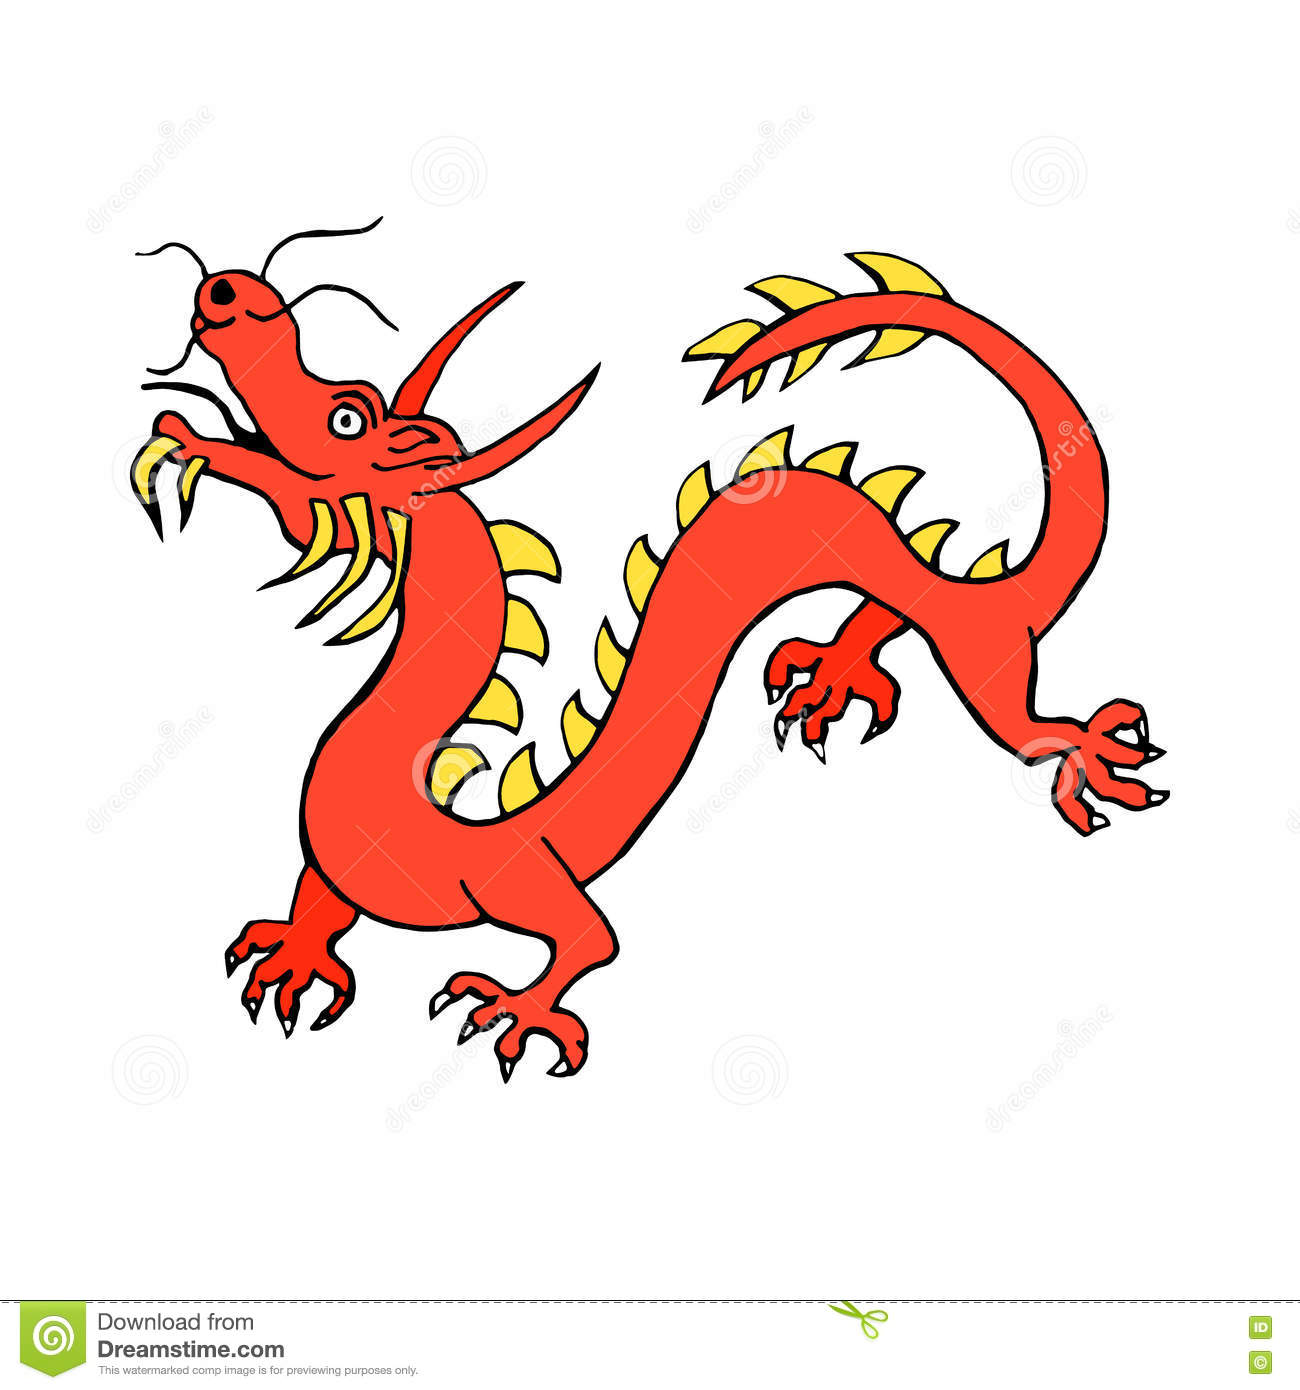 china is a dragon today essay Essay china has the world's oldest living civilization  most important and dominating form today  dragon, what he creates is.